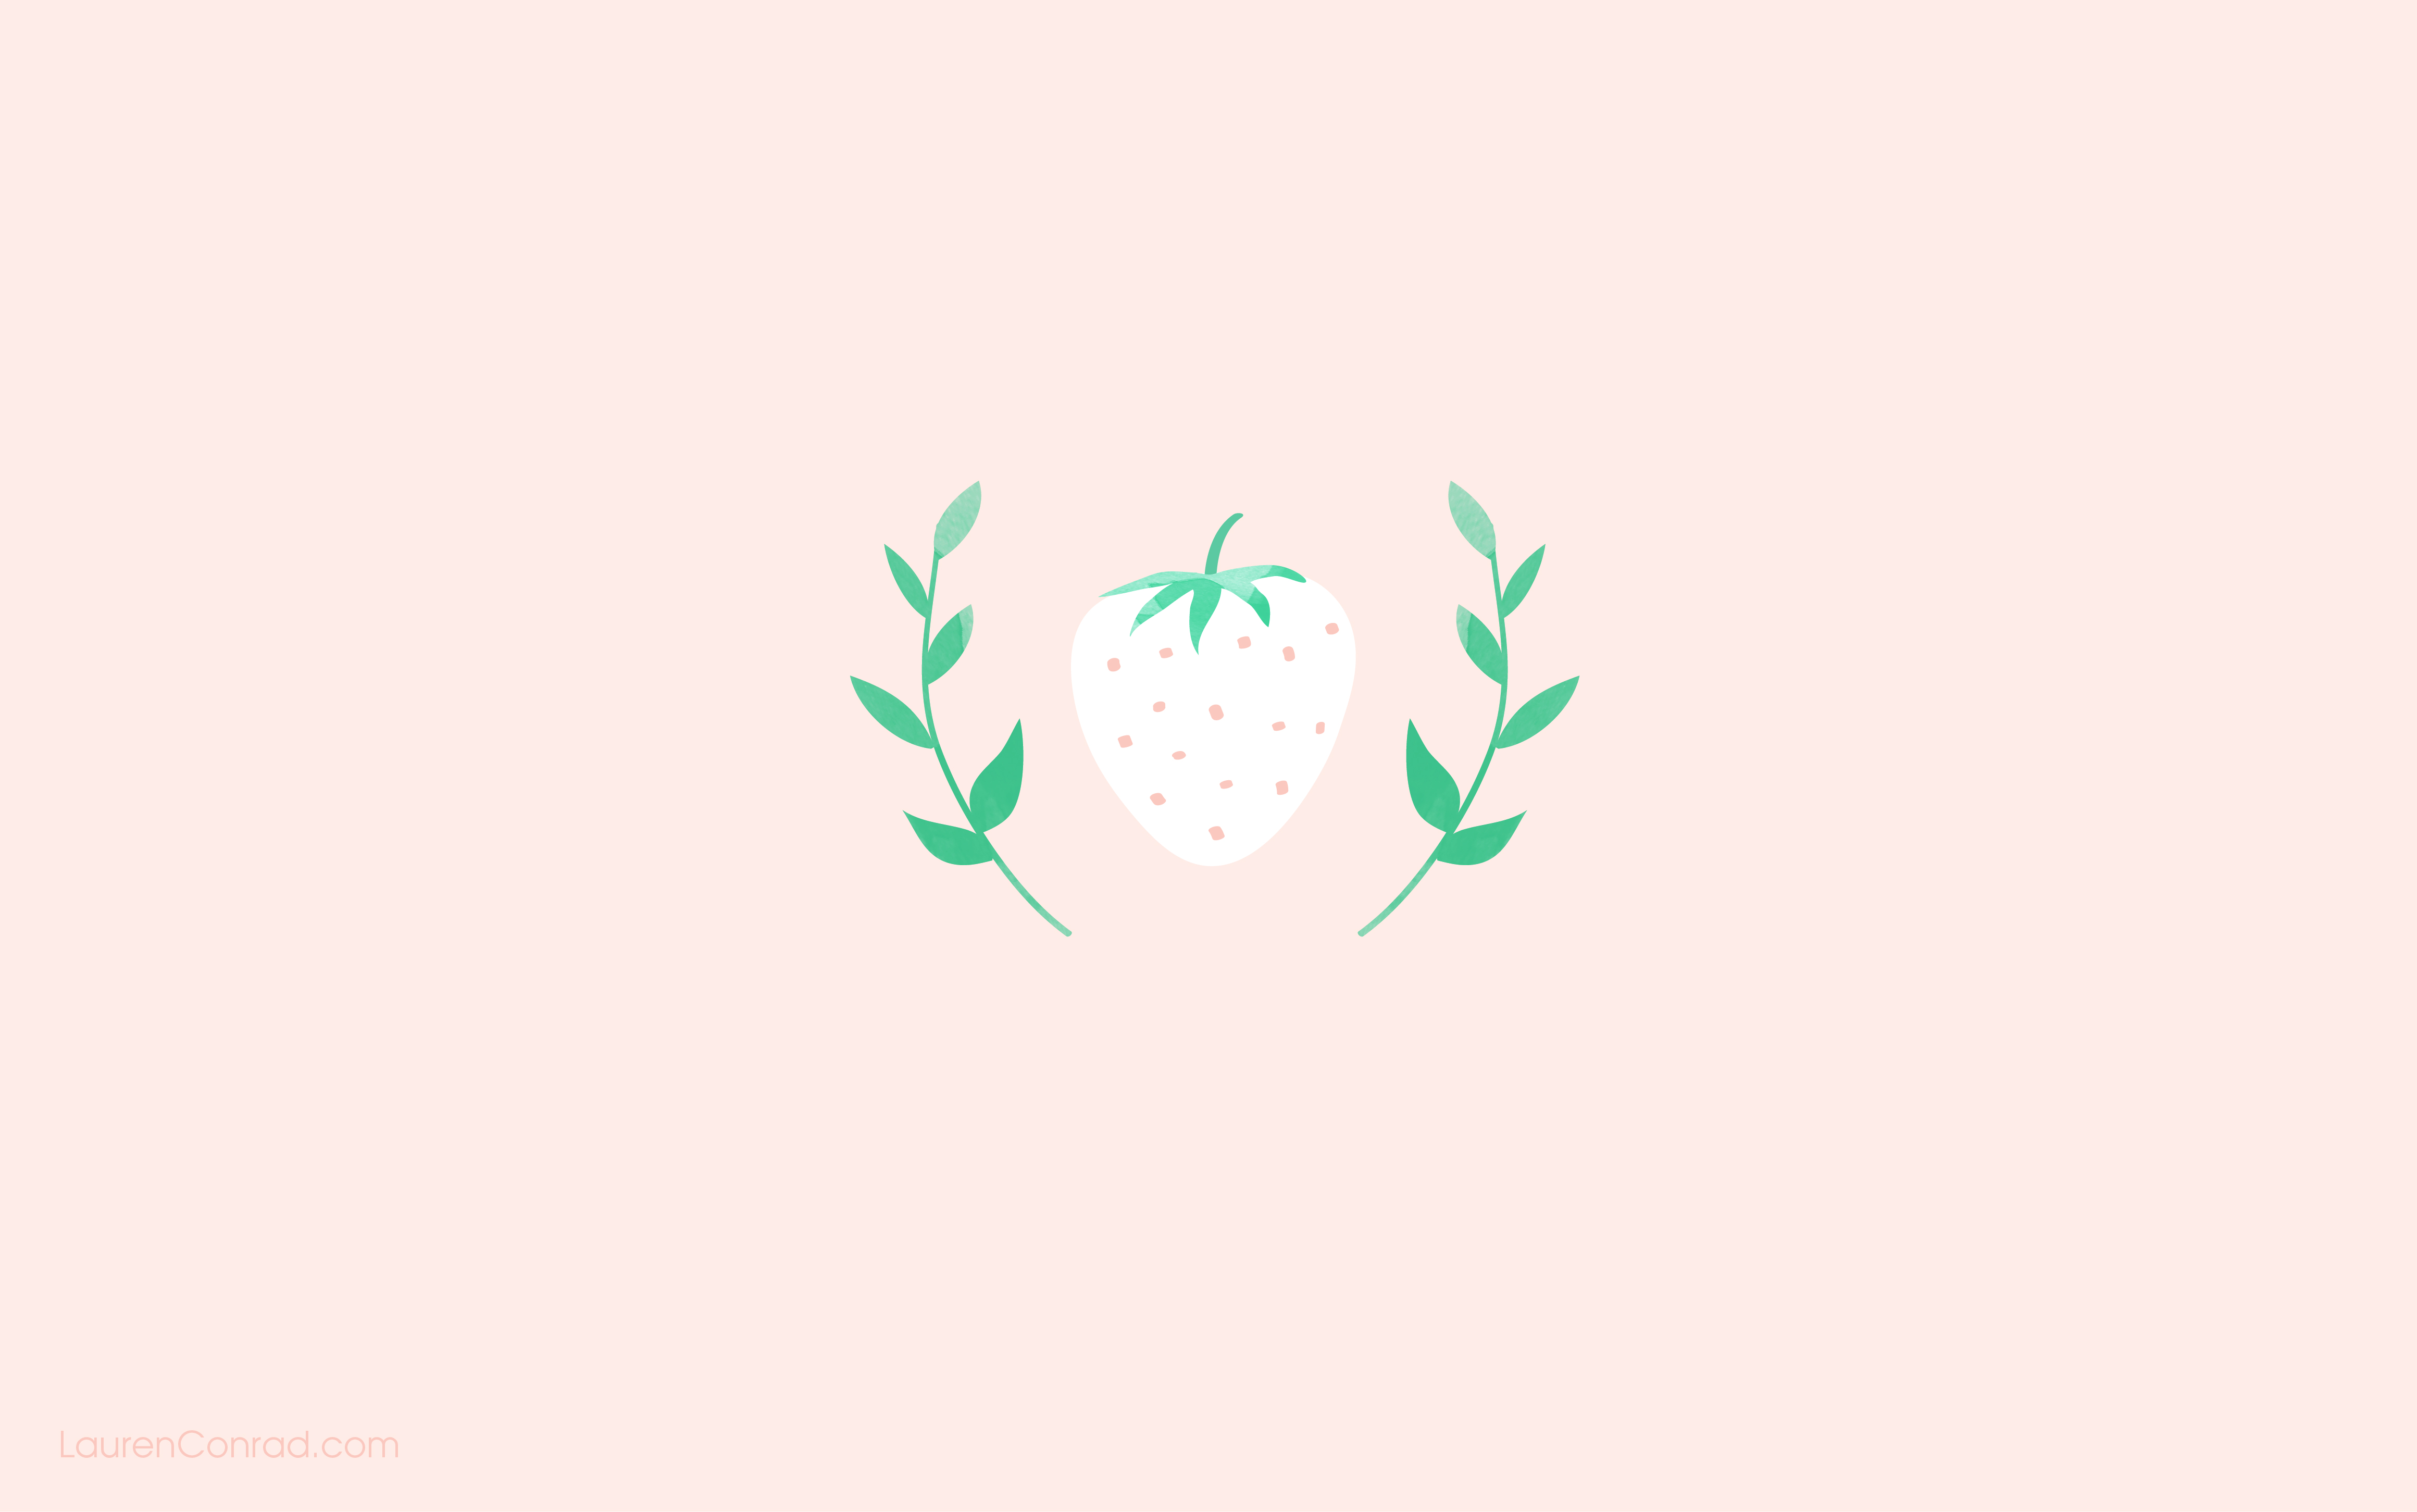 get these summery tech wallpapers by yellow heart art on laurenconrad com